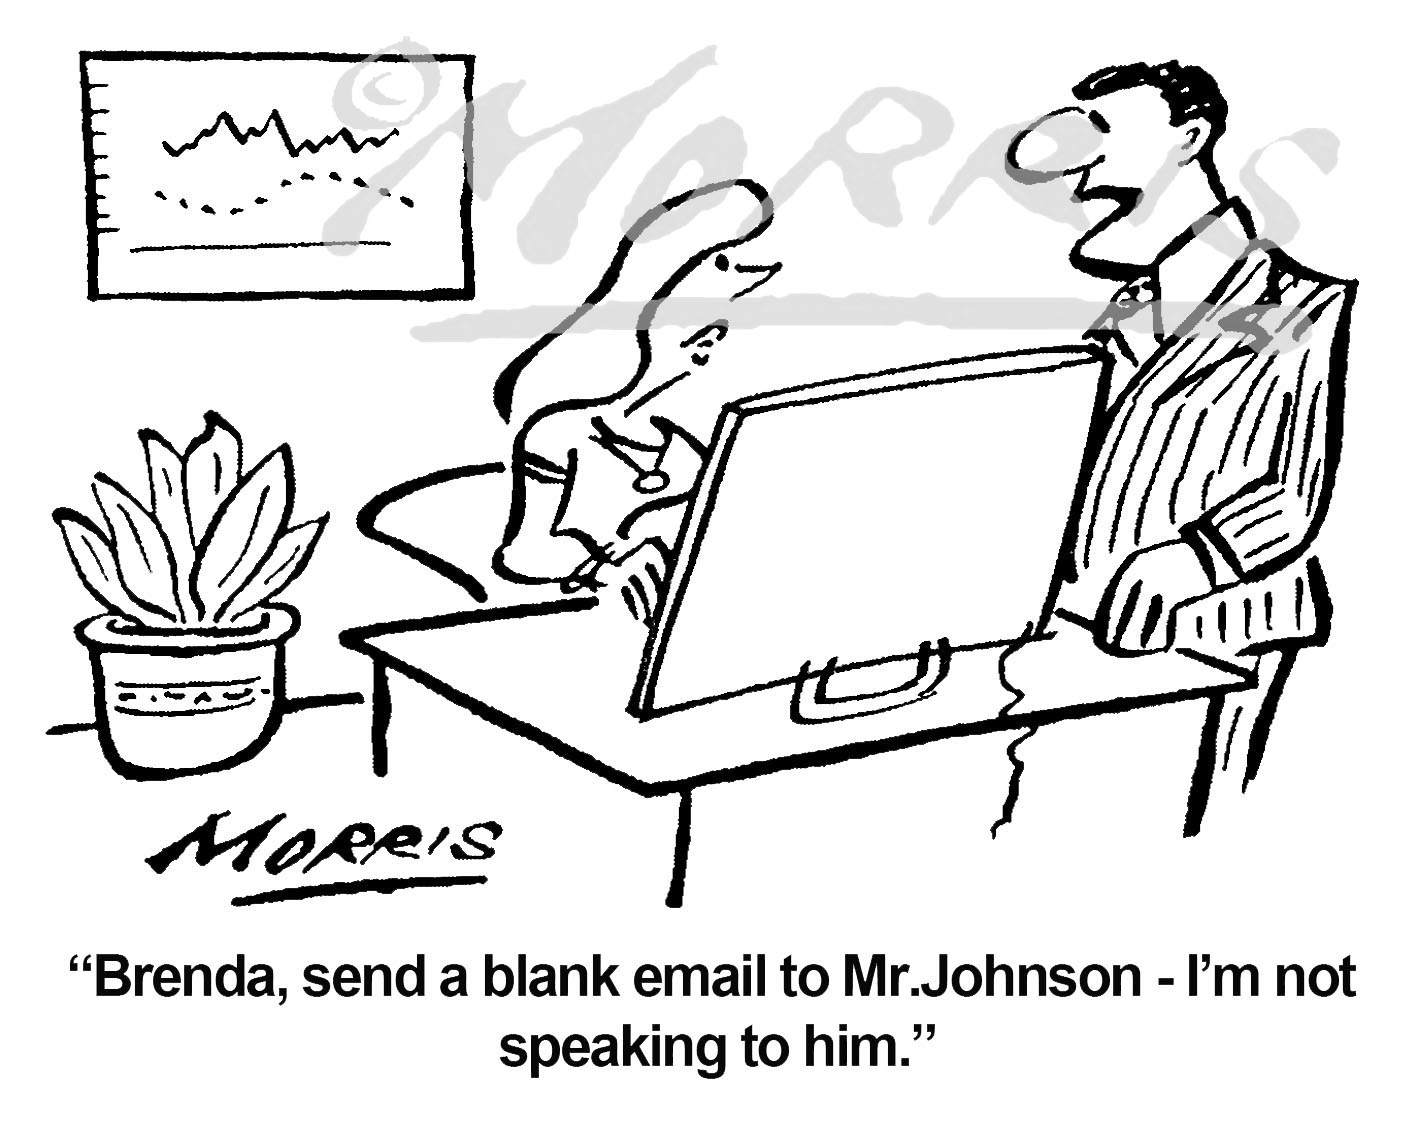 Email communication office cartoon – Ref: 7383bw